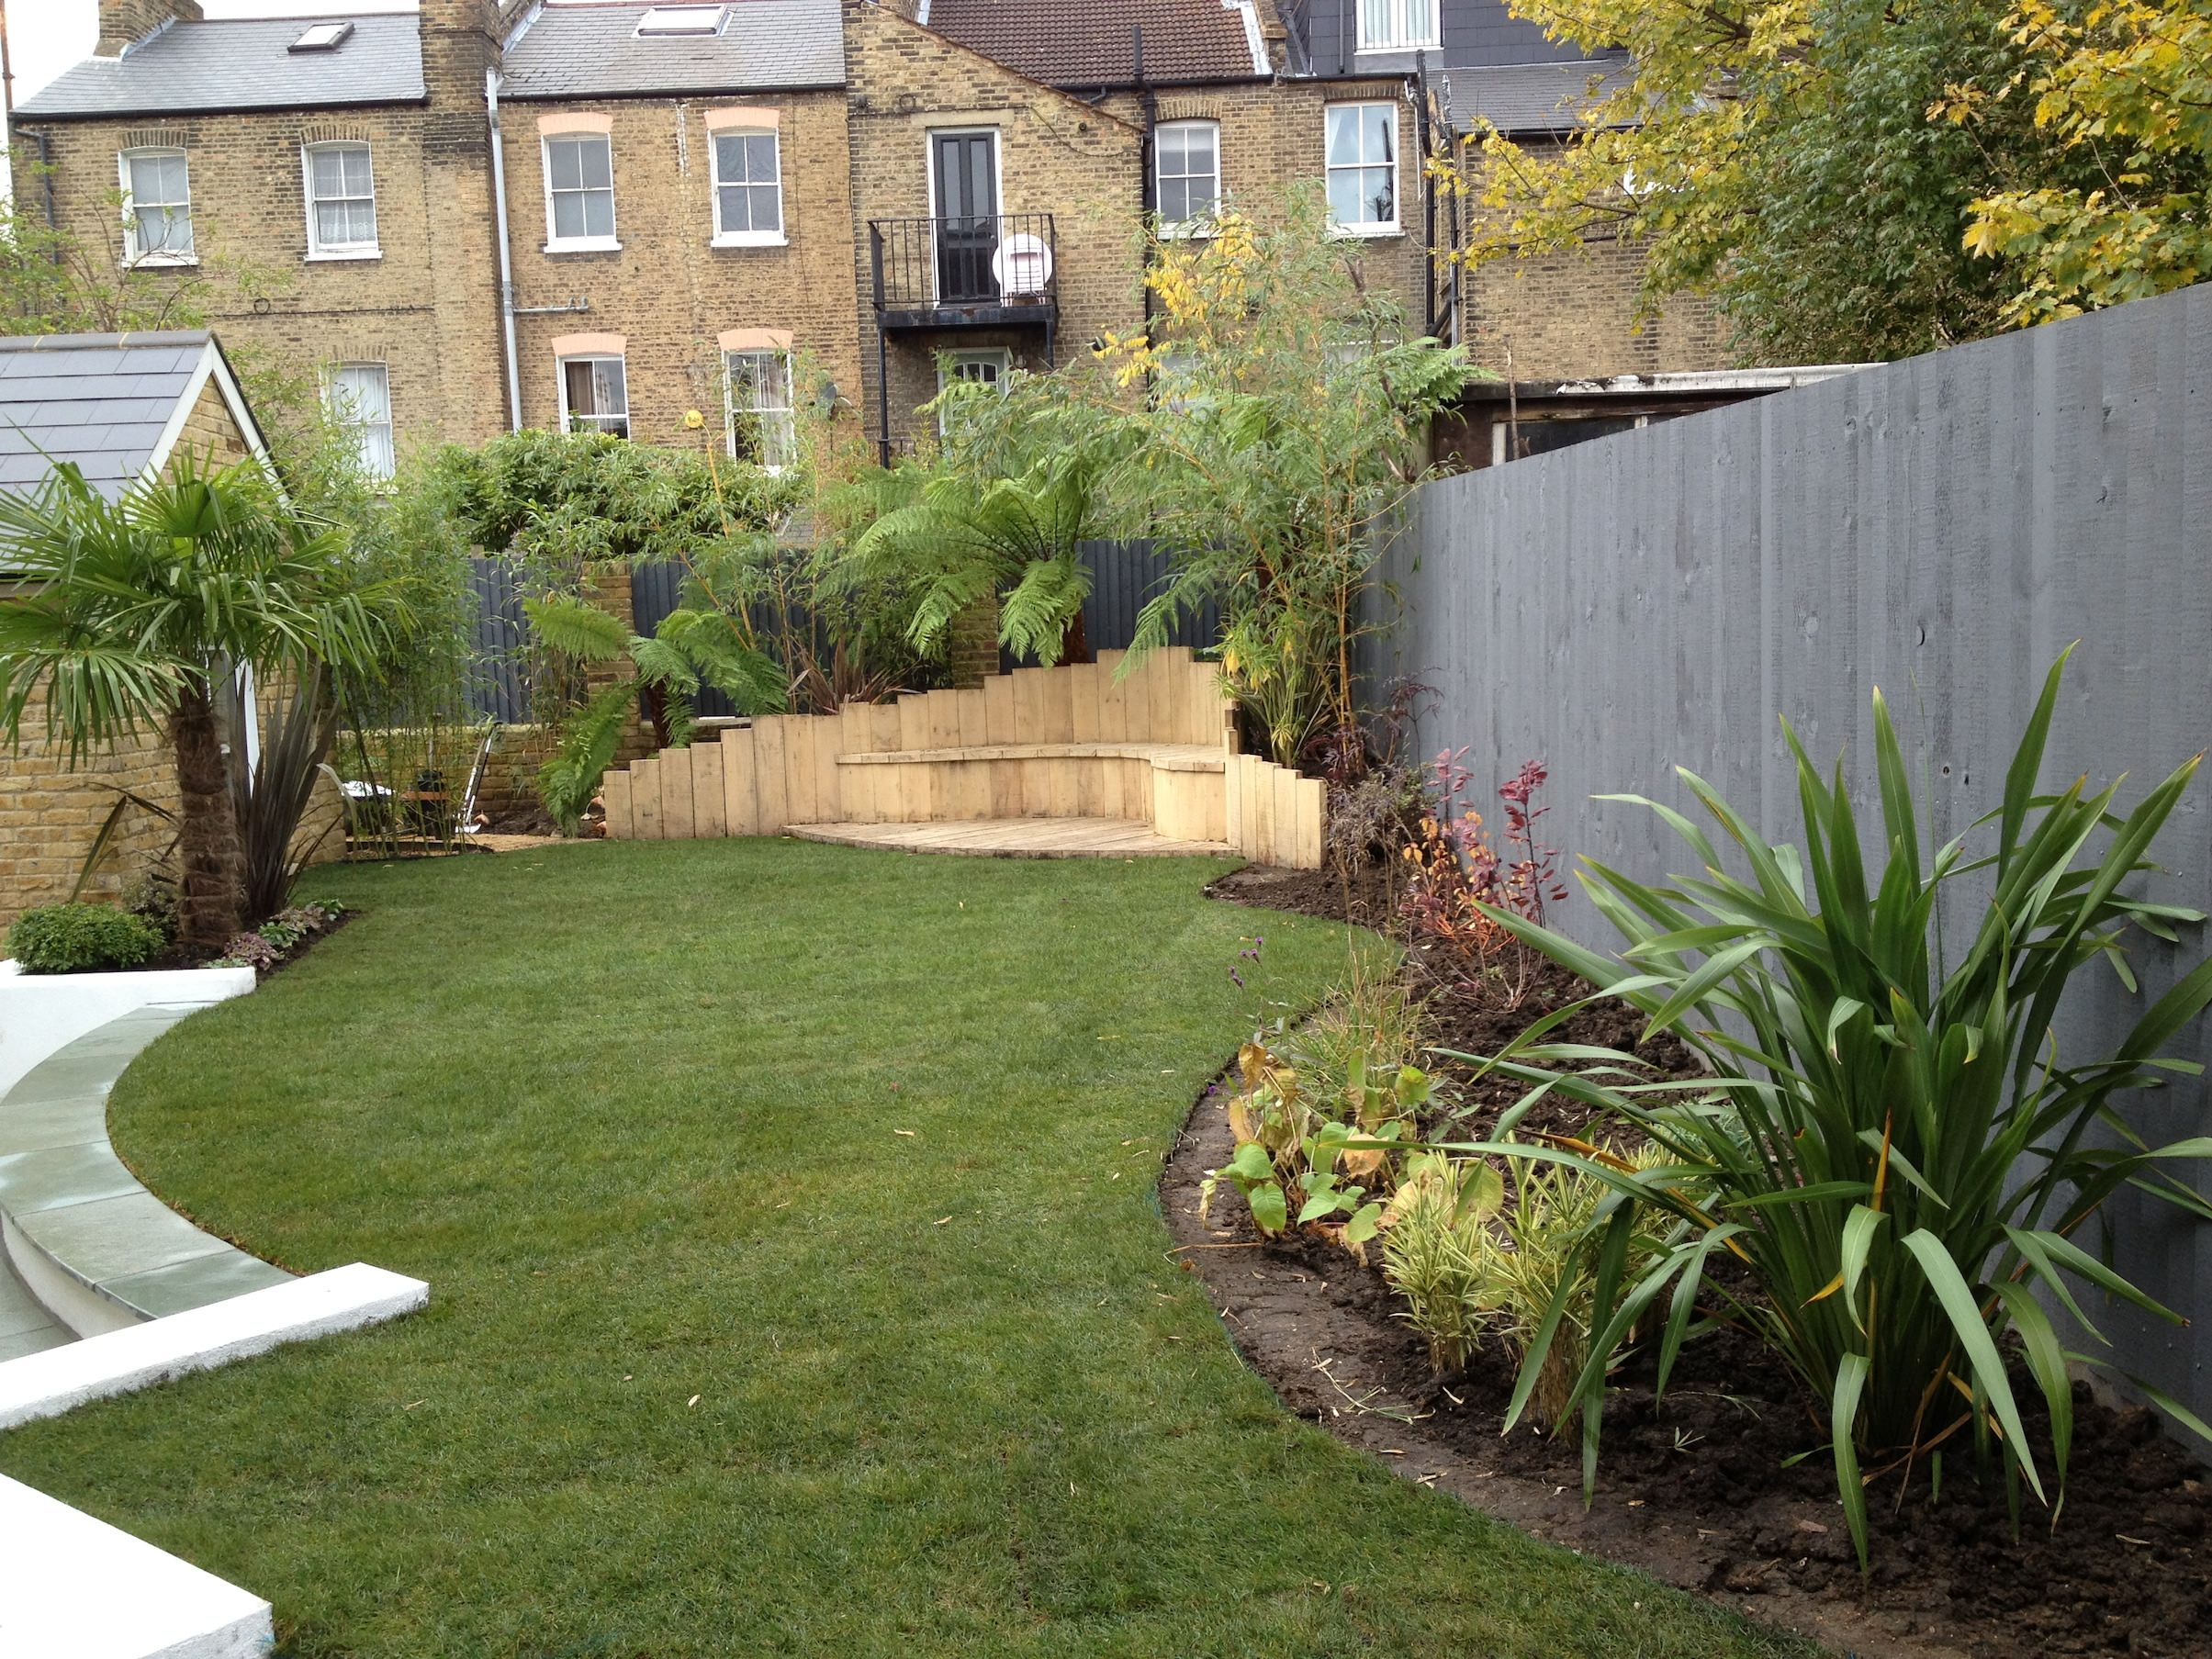 Low maintenance garden designs garden club london for Low maintenance garden design